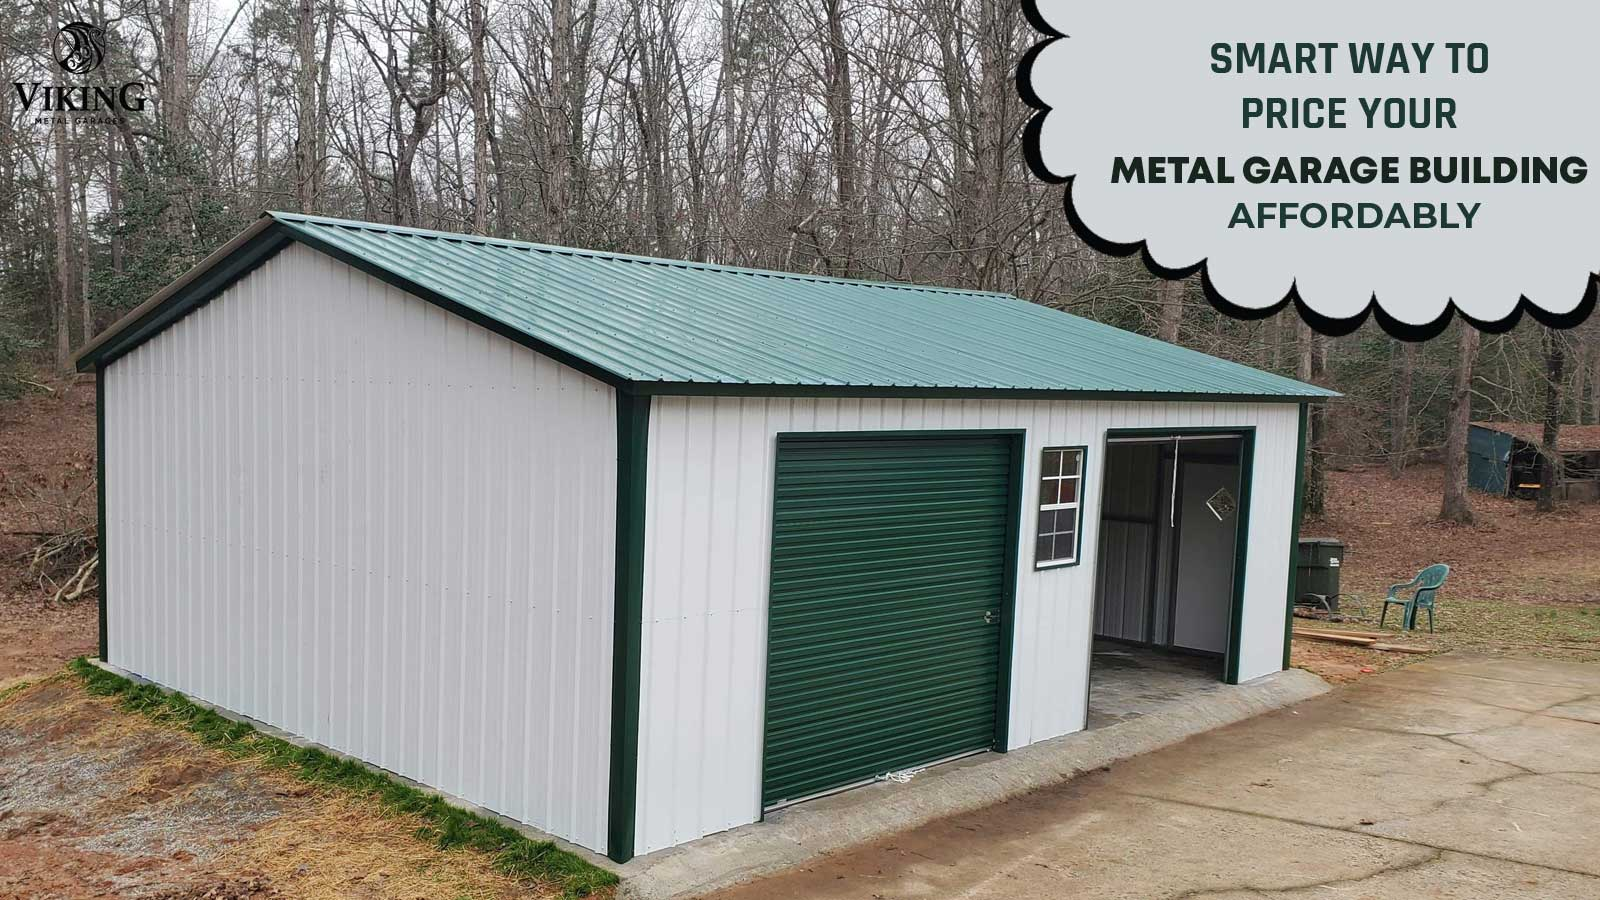 Smart Way to Price Your Metal Garage Building Affordably